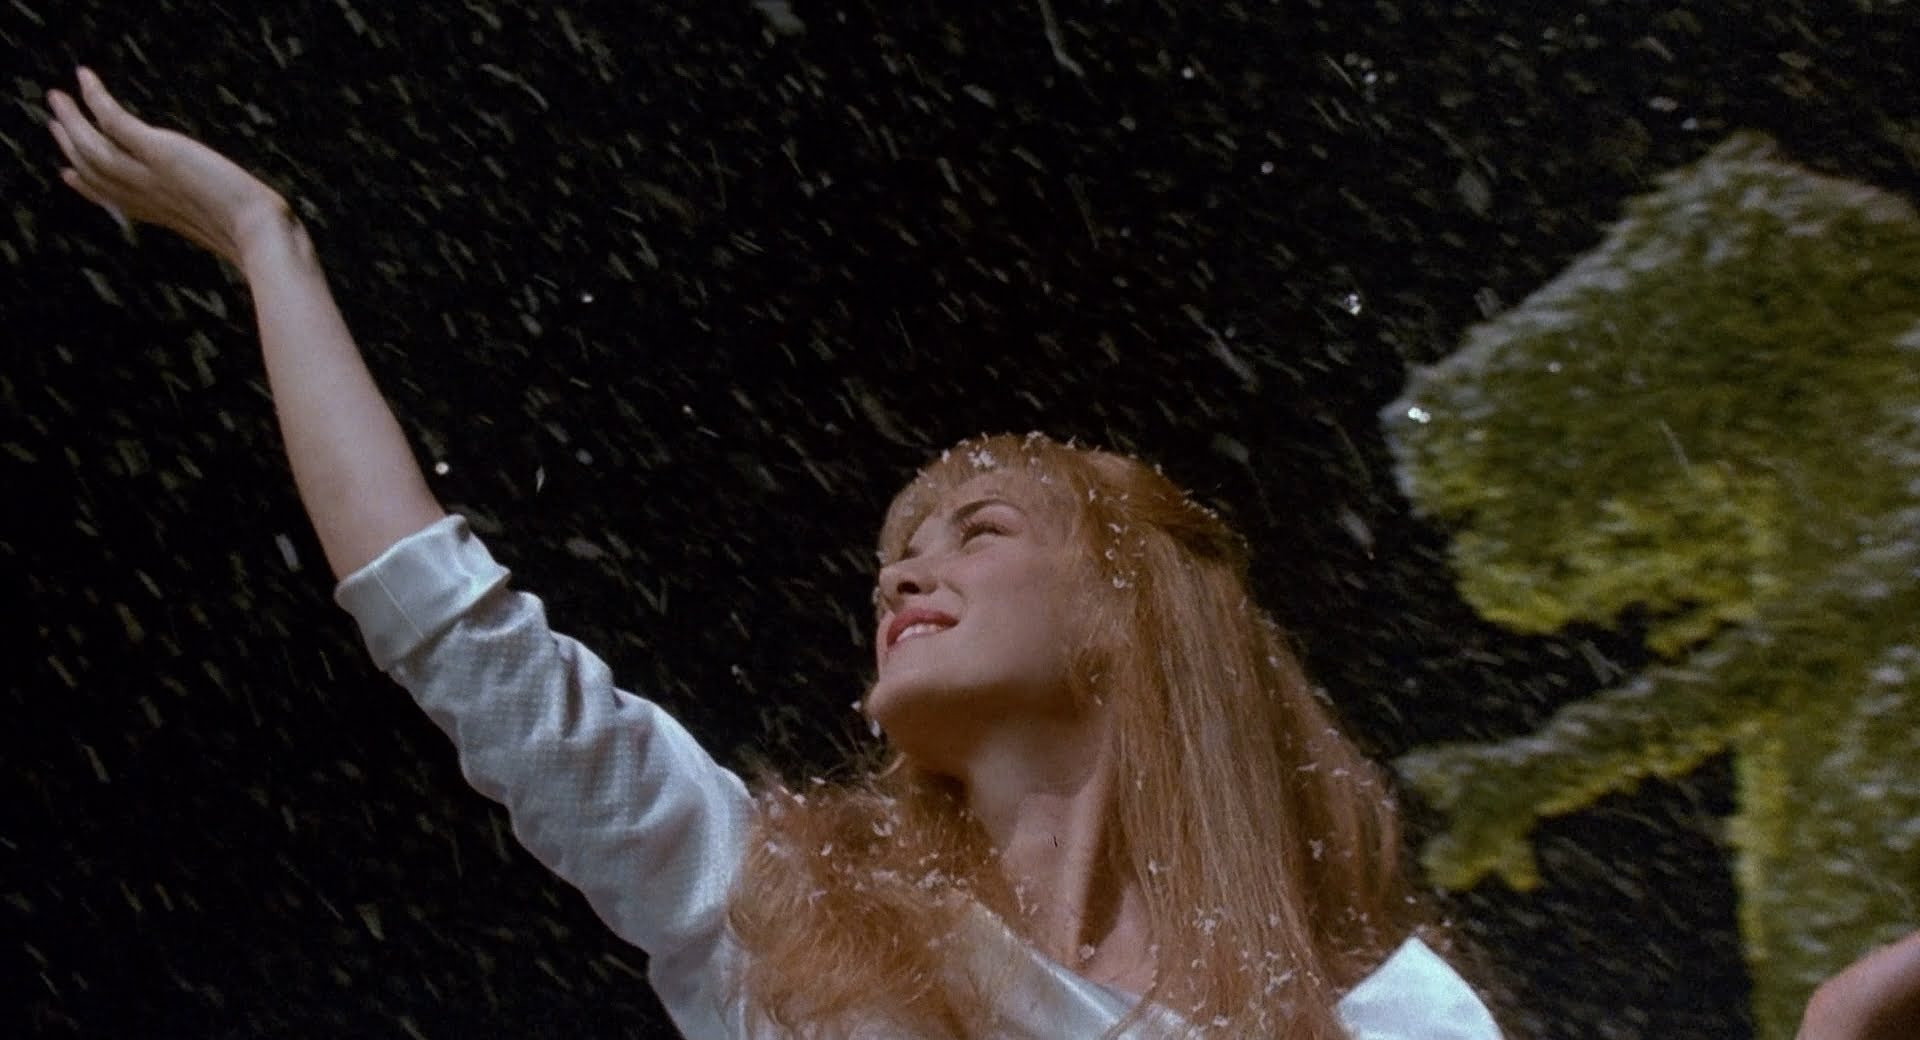 Wynona Ryder reaches out to the snow created by Edward Scissorhands in this non-traditional Christmas movie.